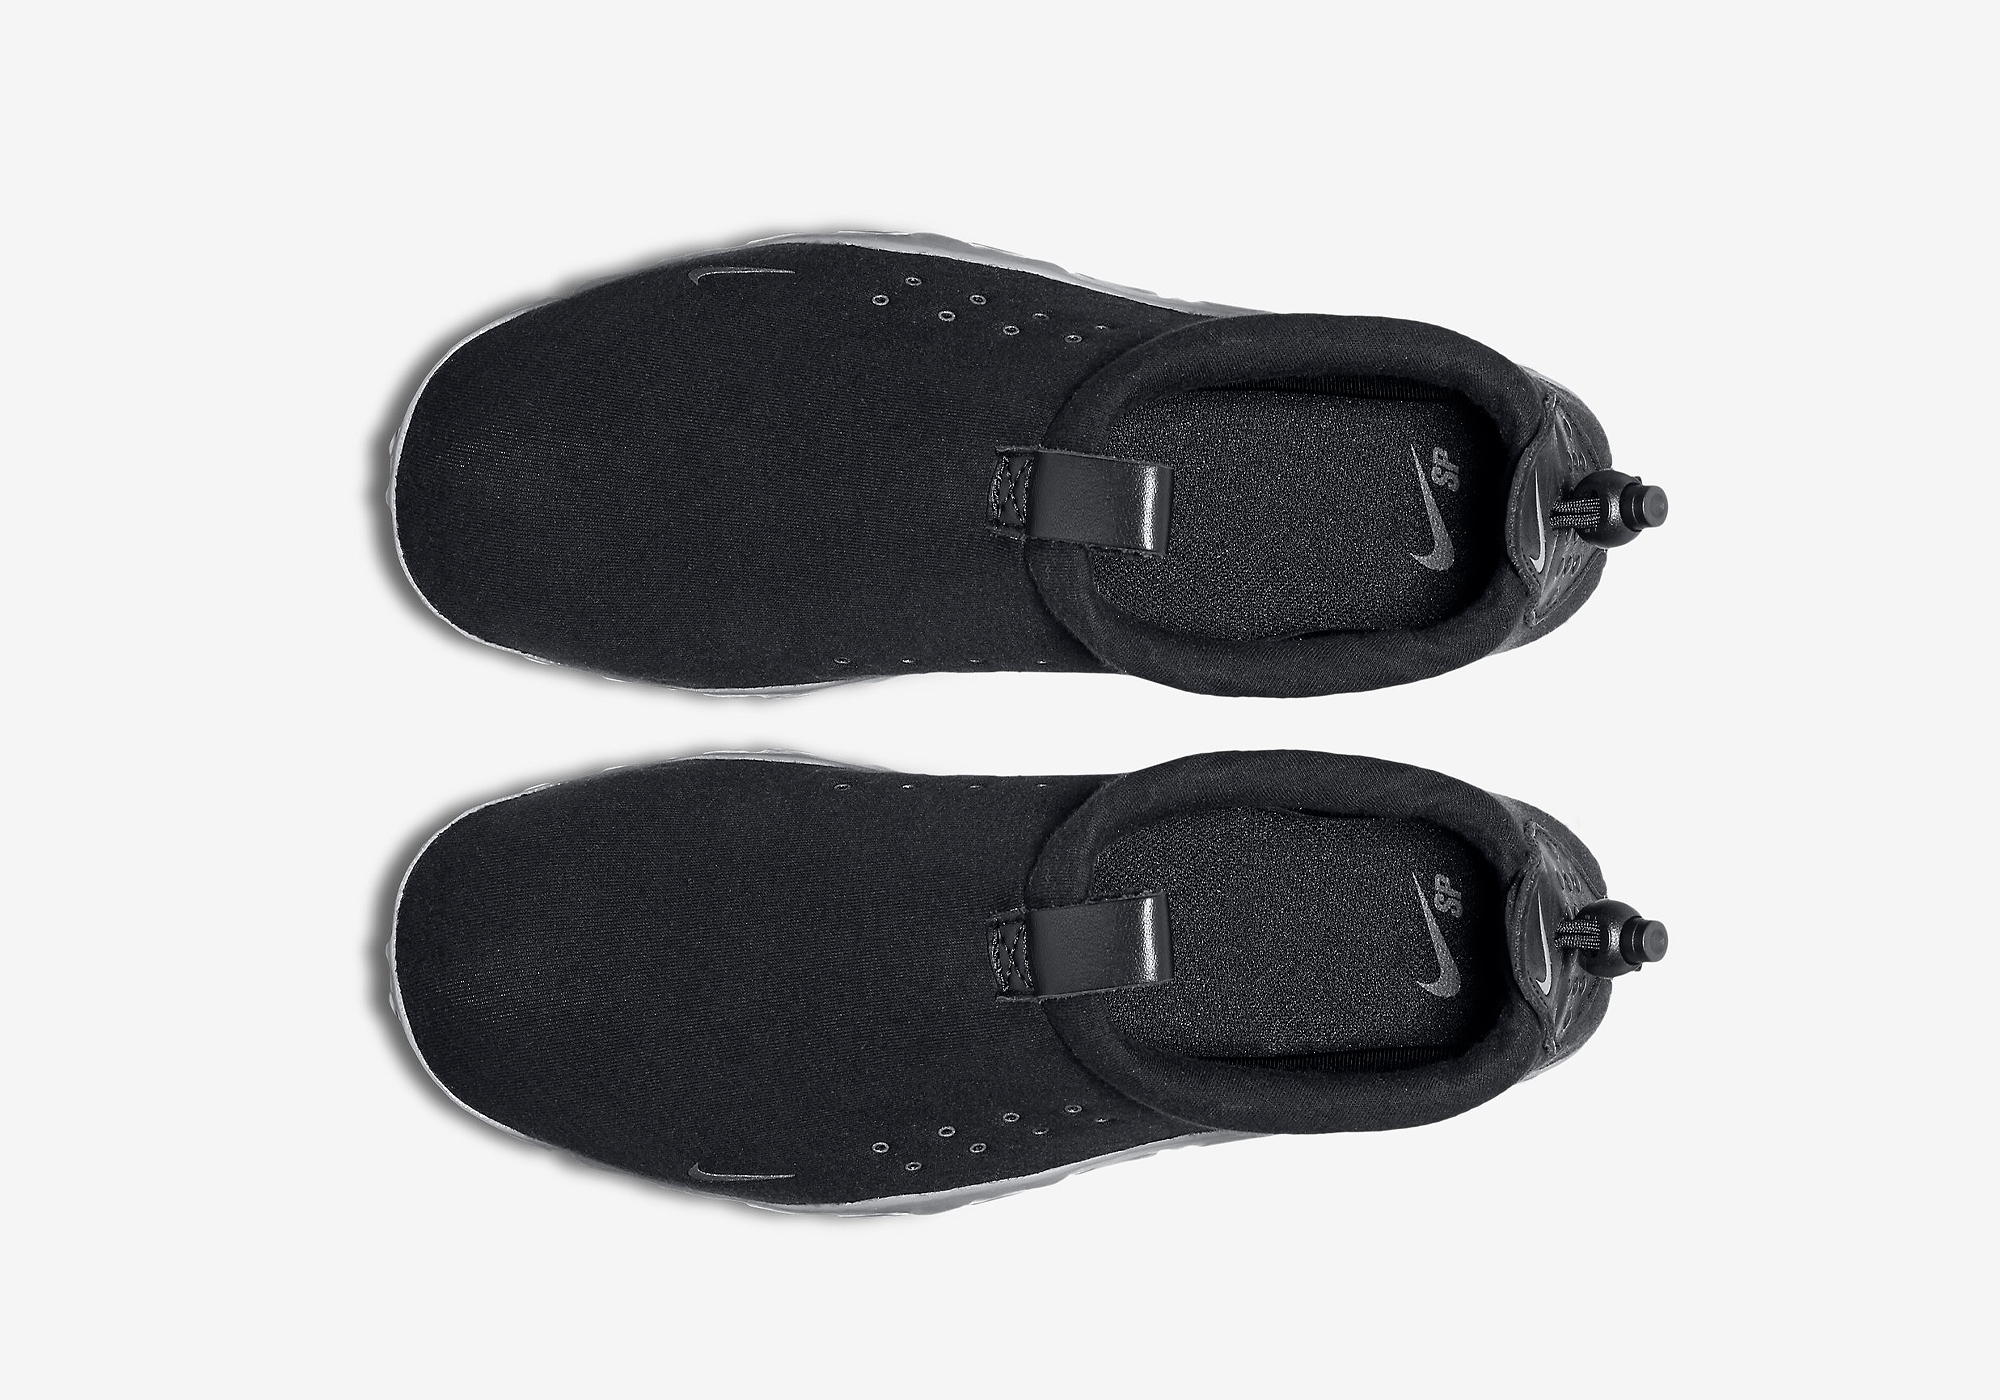 834591-010-nike-air-moc-tech-fleece-02